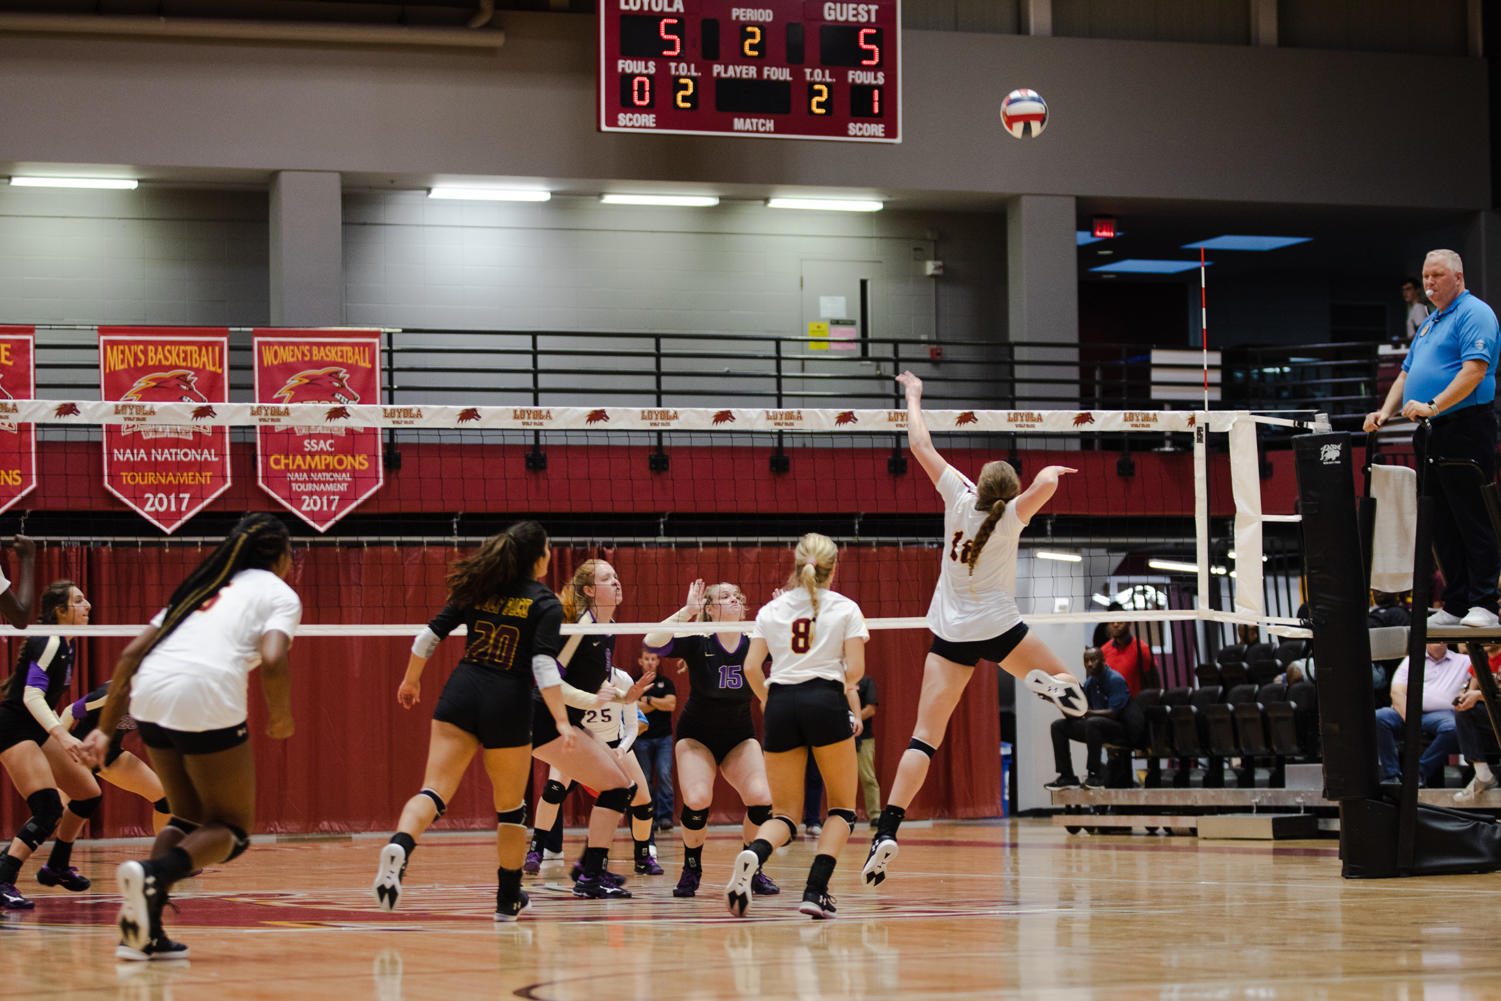 Psychology senior Malea Howie goes for a kill in the home opener against Bethel University. Howie finished with a career high of 17 kills against Mississippi College. Photo credit: Julia Santos